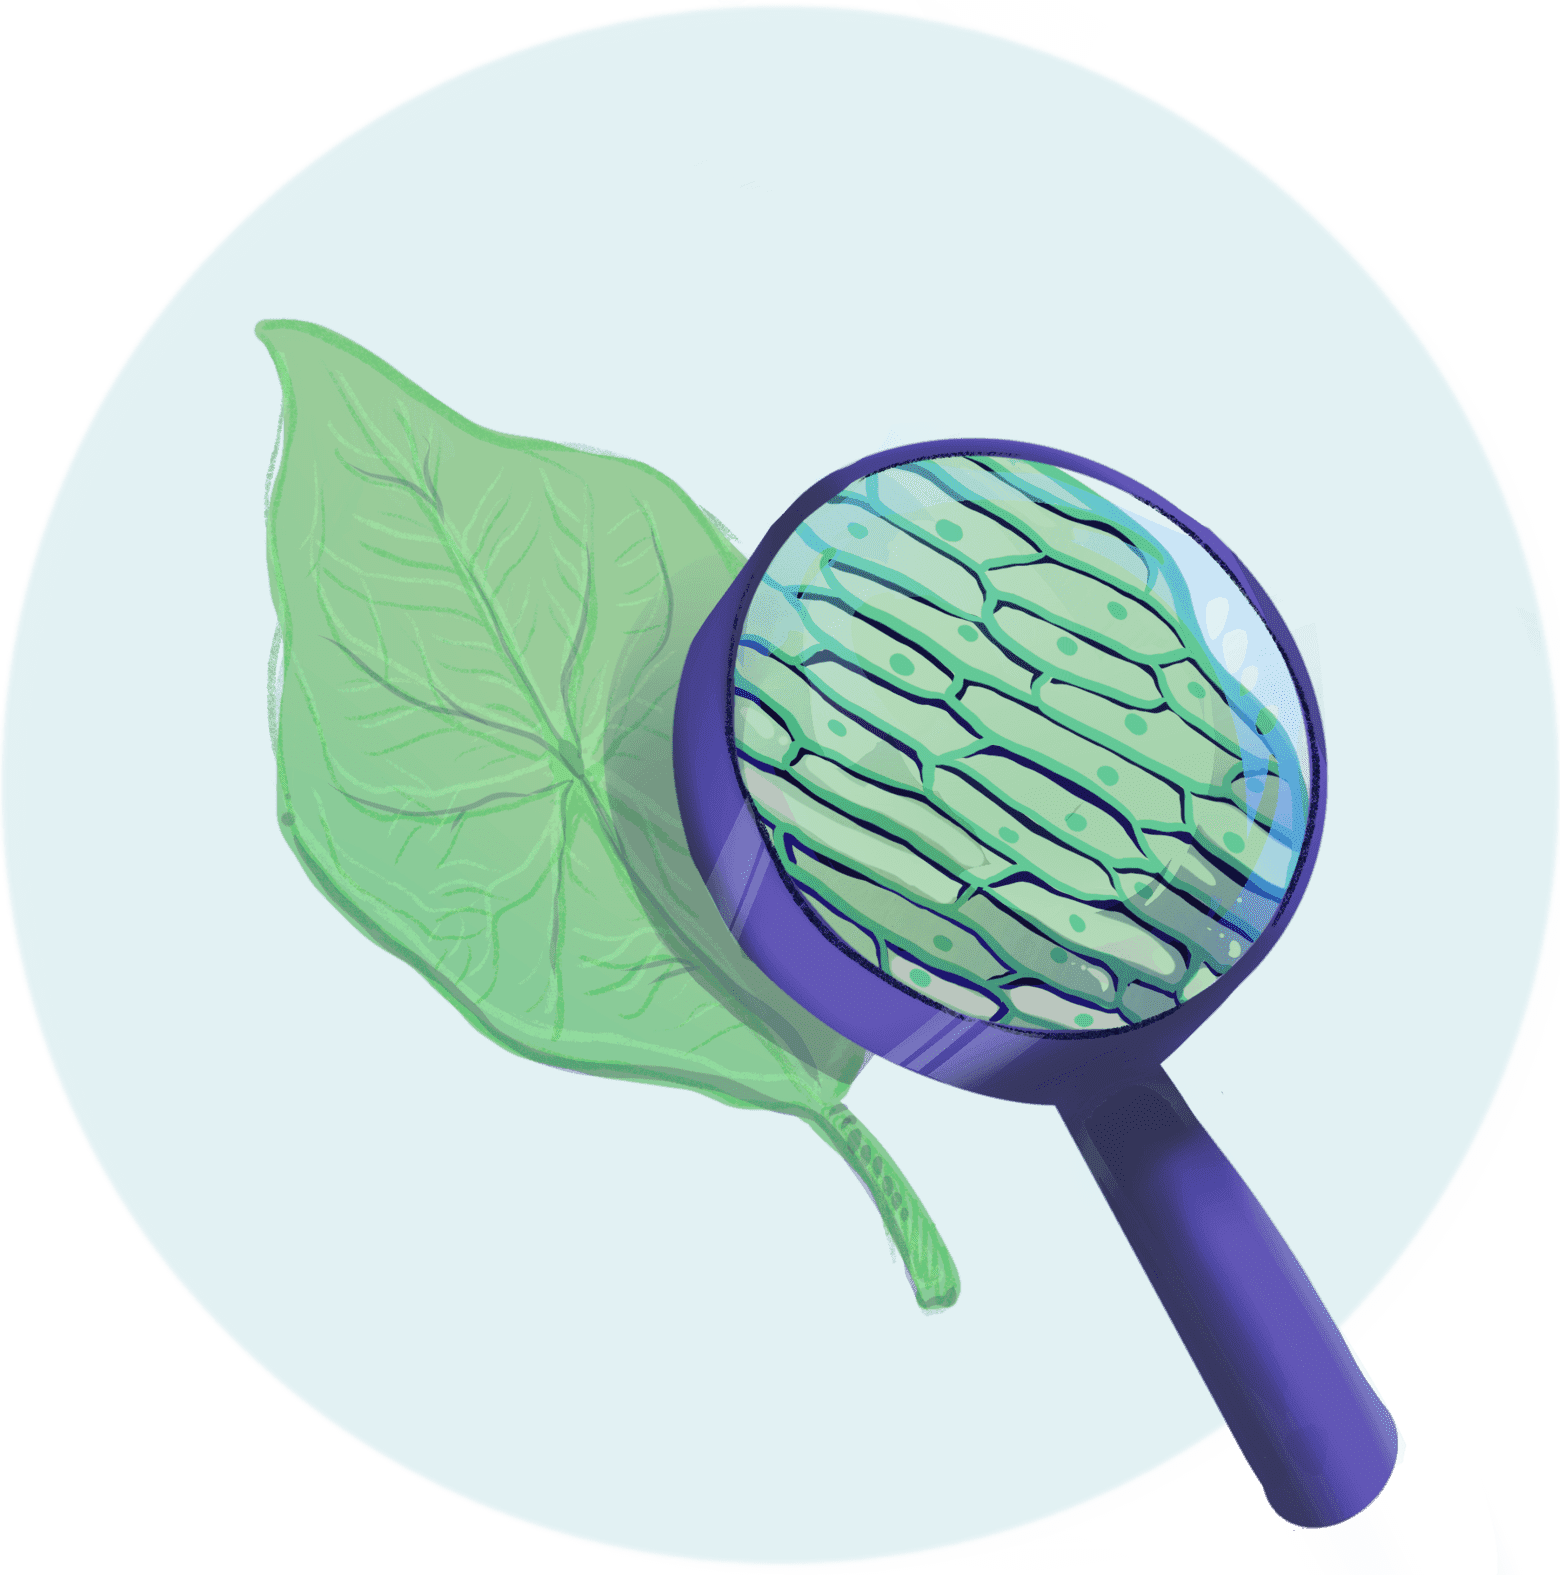 Illustration of magnifying glass showing the individual cells of a leaf